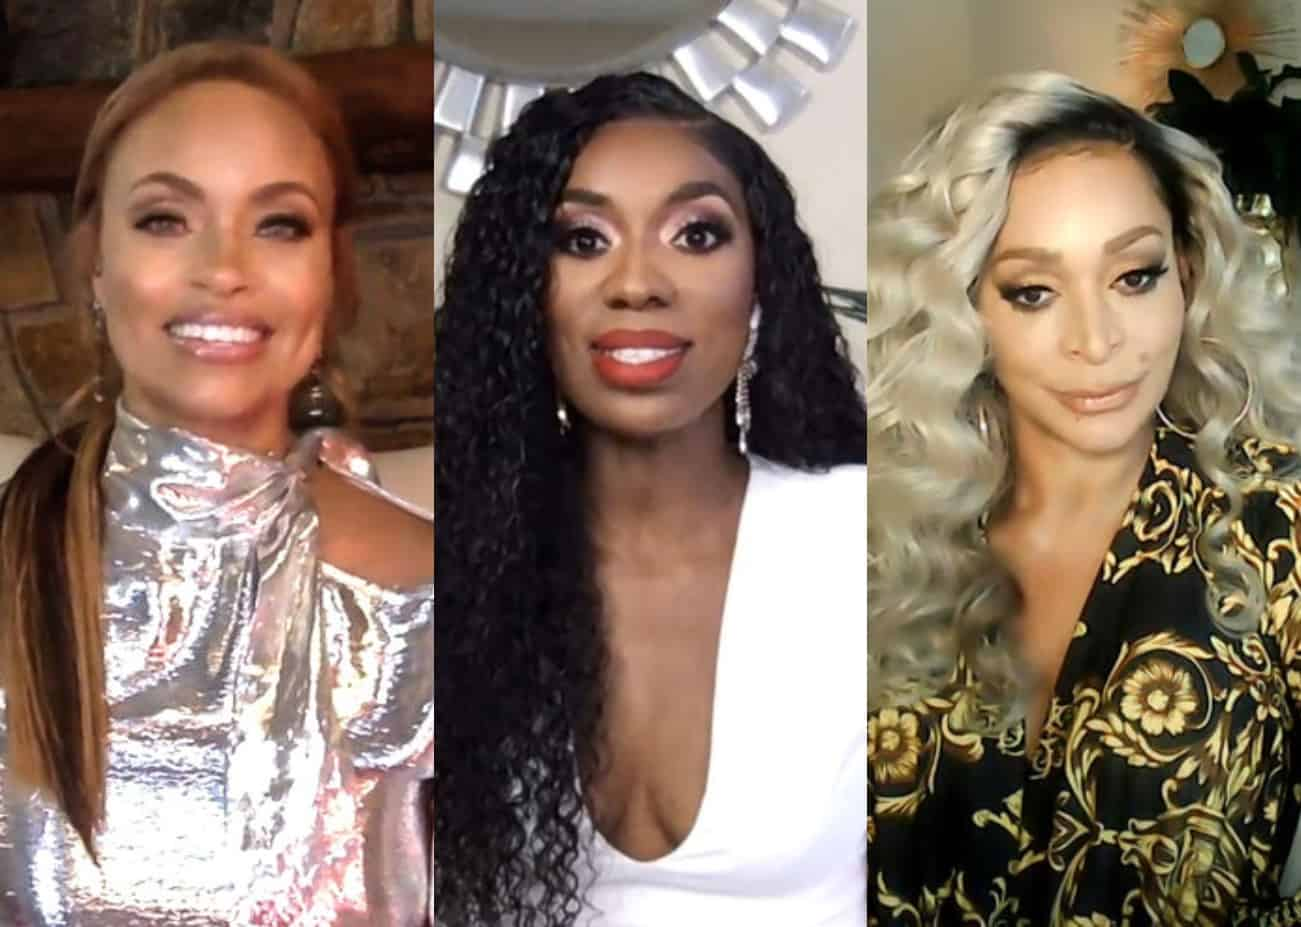 """RHOP Star Gizelle Bryant Dishes on Season 6 Drama With Wendy Osefo, Shares Where She First Heard """"Eddie Rumors"""" and Reveals Where She Stands With Karen Huger"""